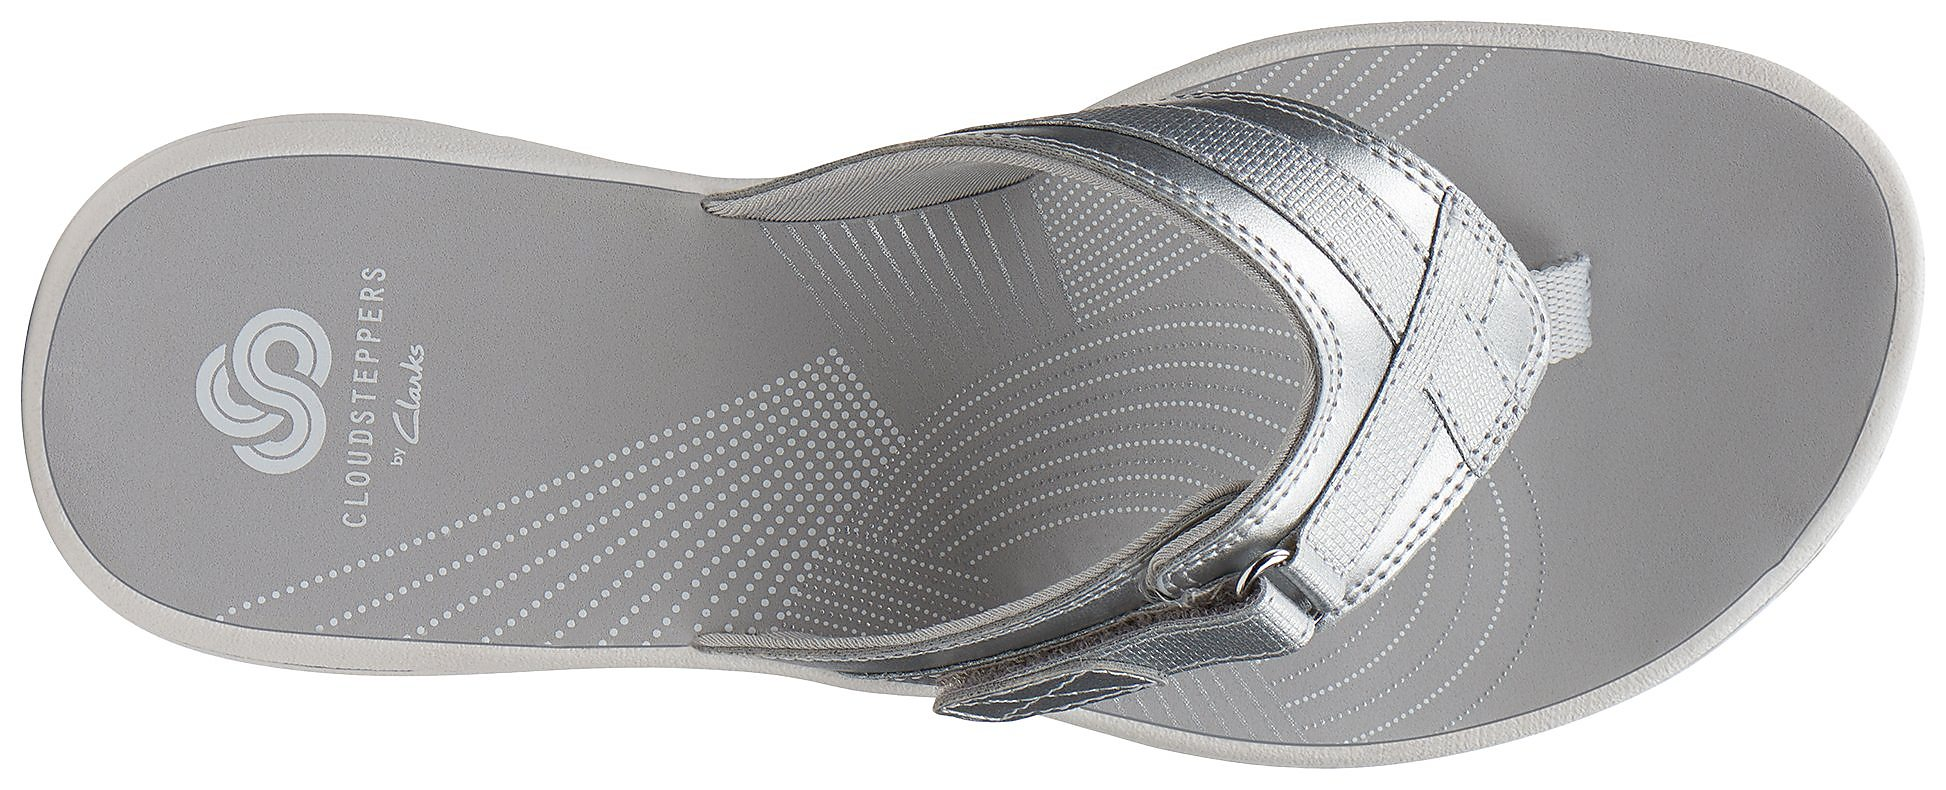 Clarks-Womens-Breeze-Sea-Flip-Flops-Comfort-Summer-Sandals thumbnail 30